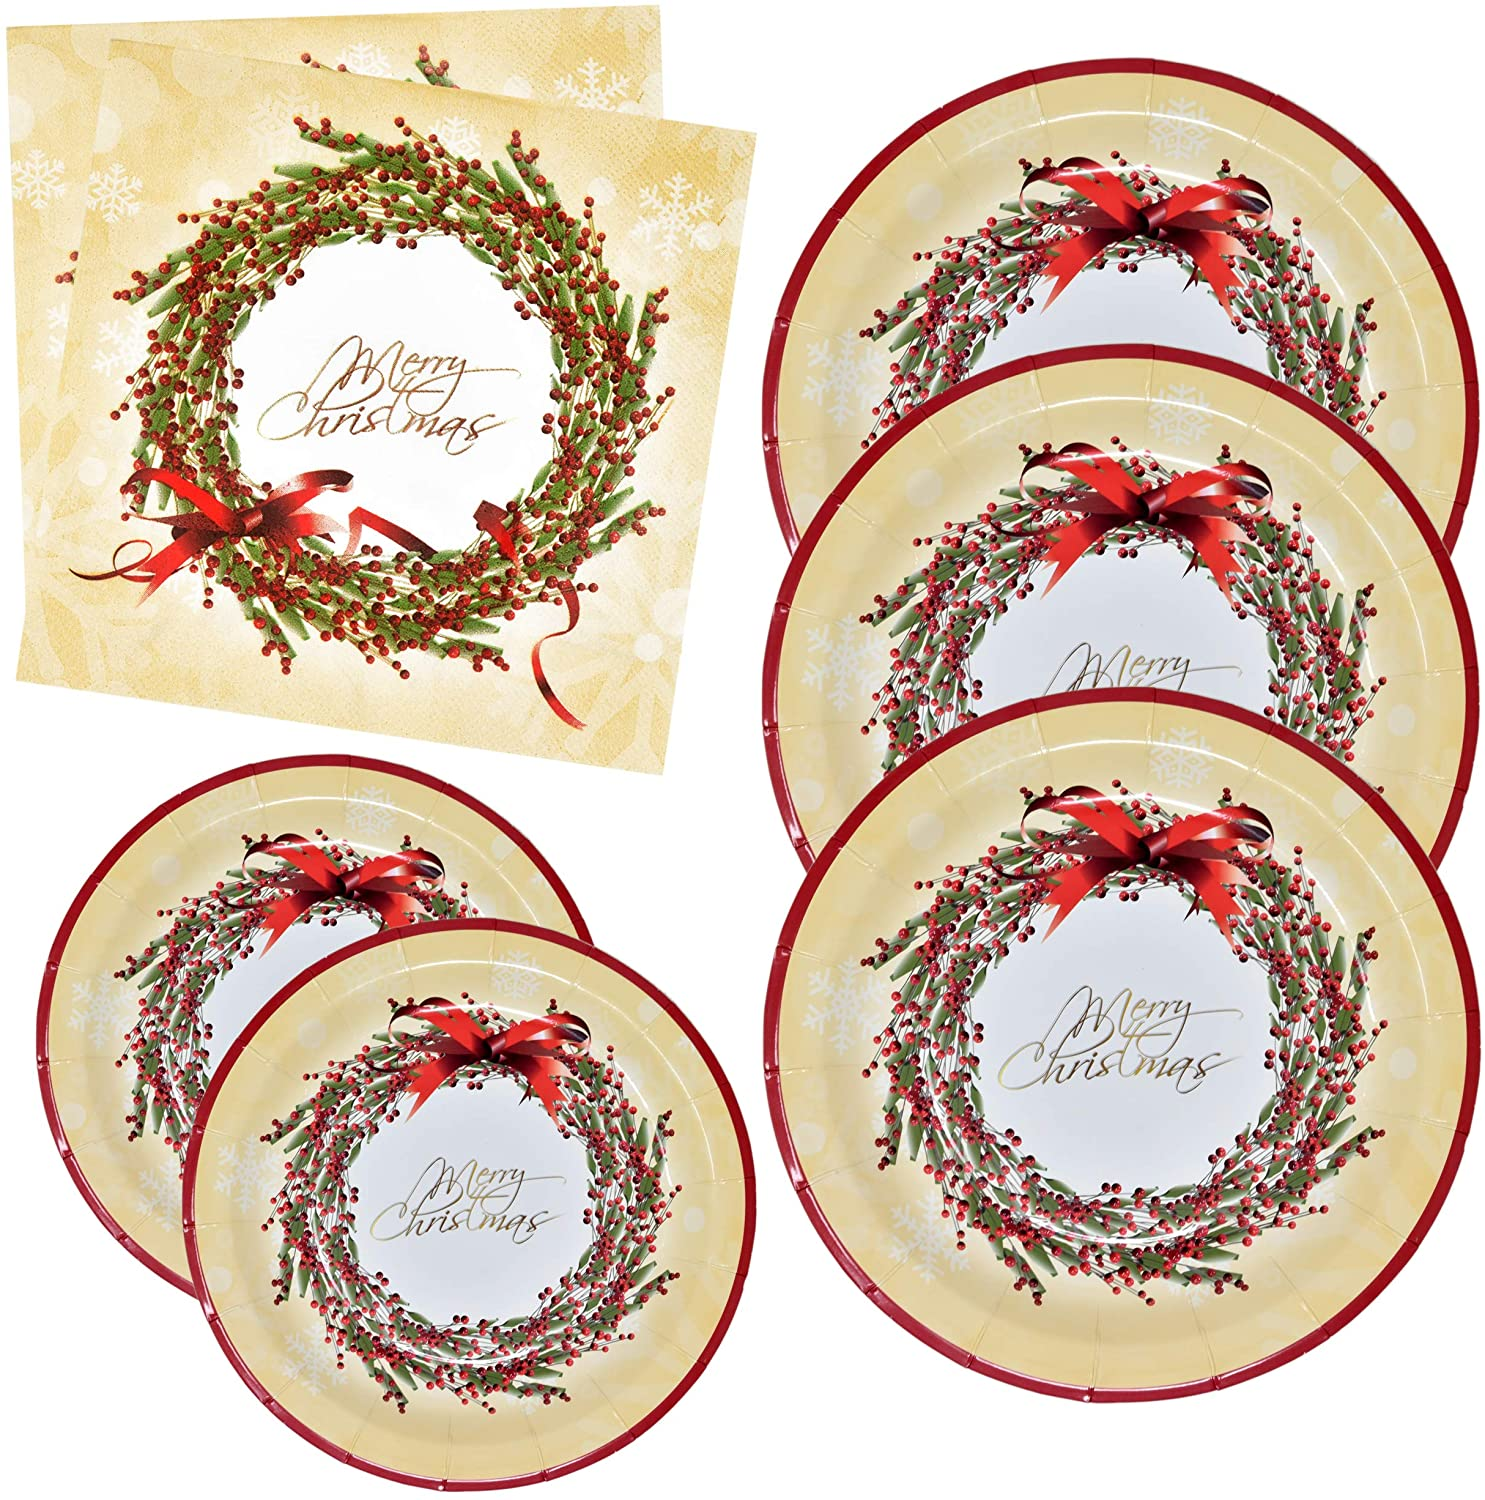 Merry Christmas Plates and Napkins Party Supplies Tableware Set 50 9